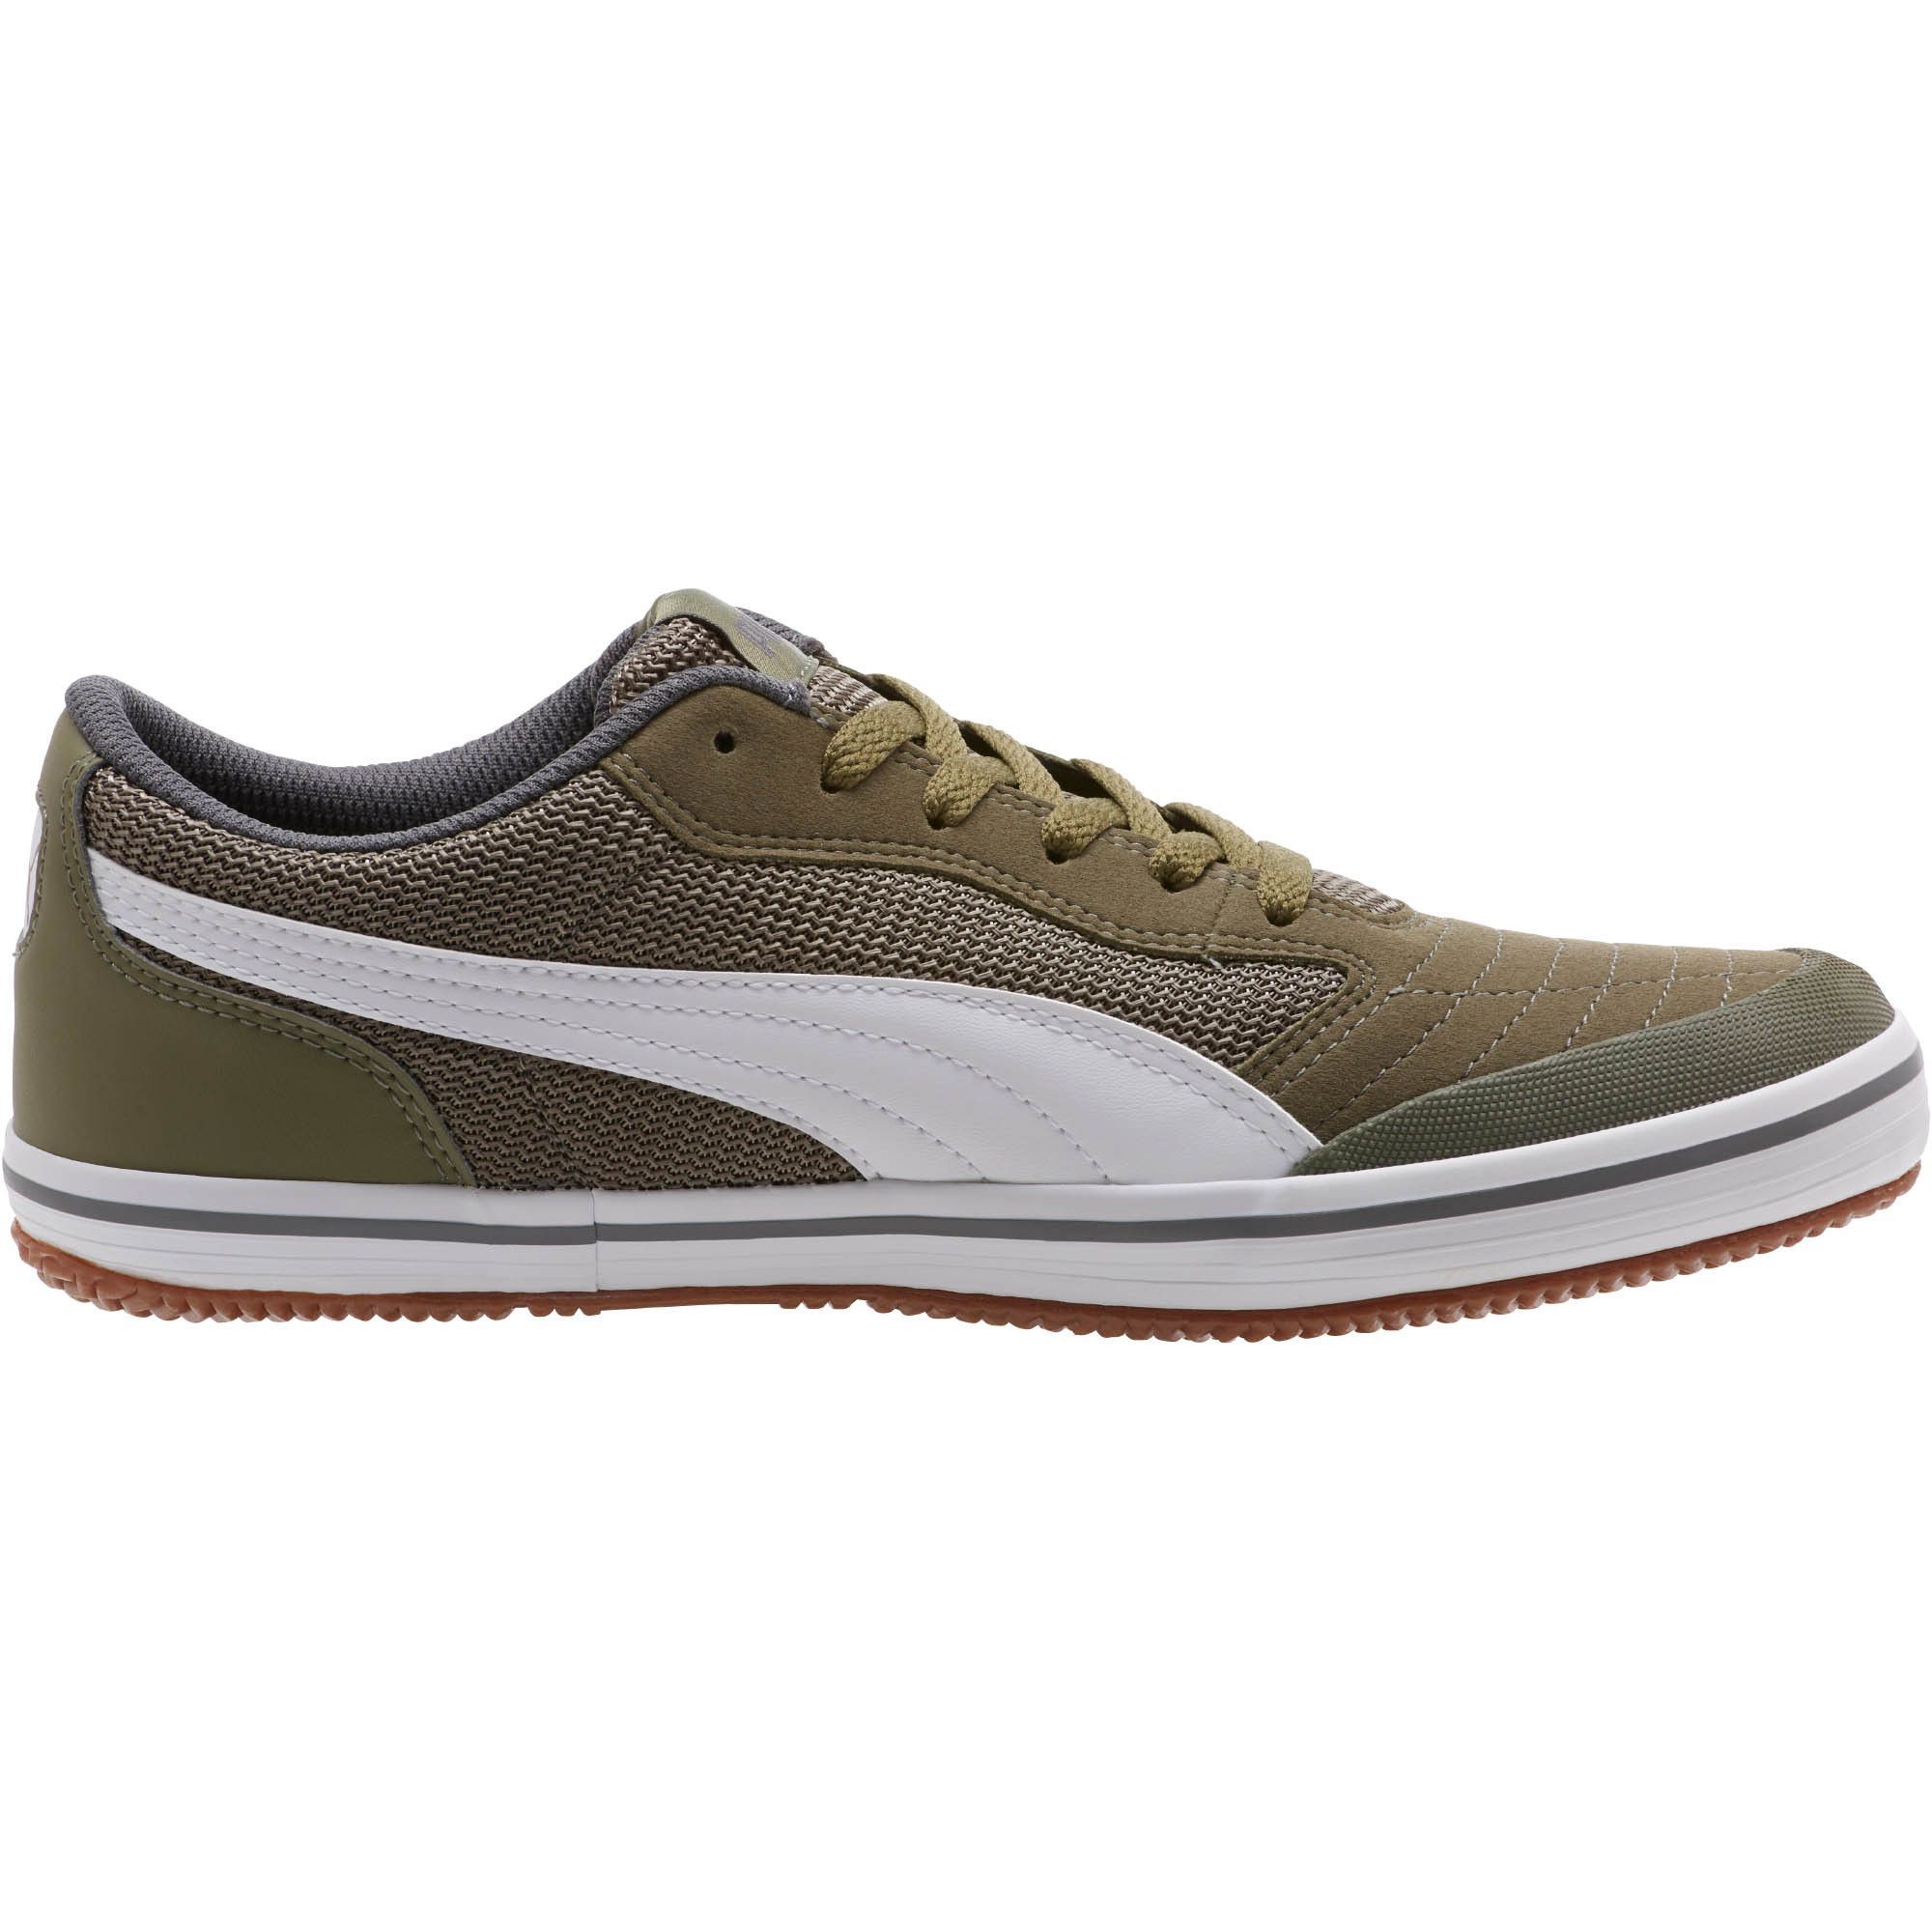 PUMA-Men-039-s-Astro-Sala-Sneakers thumbnail 25